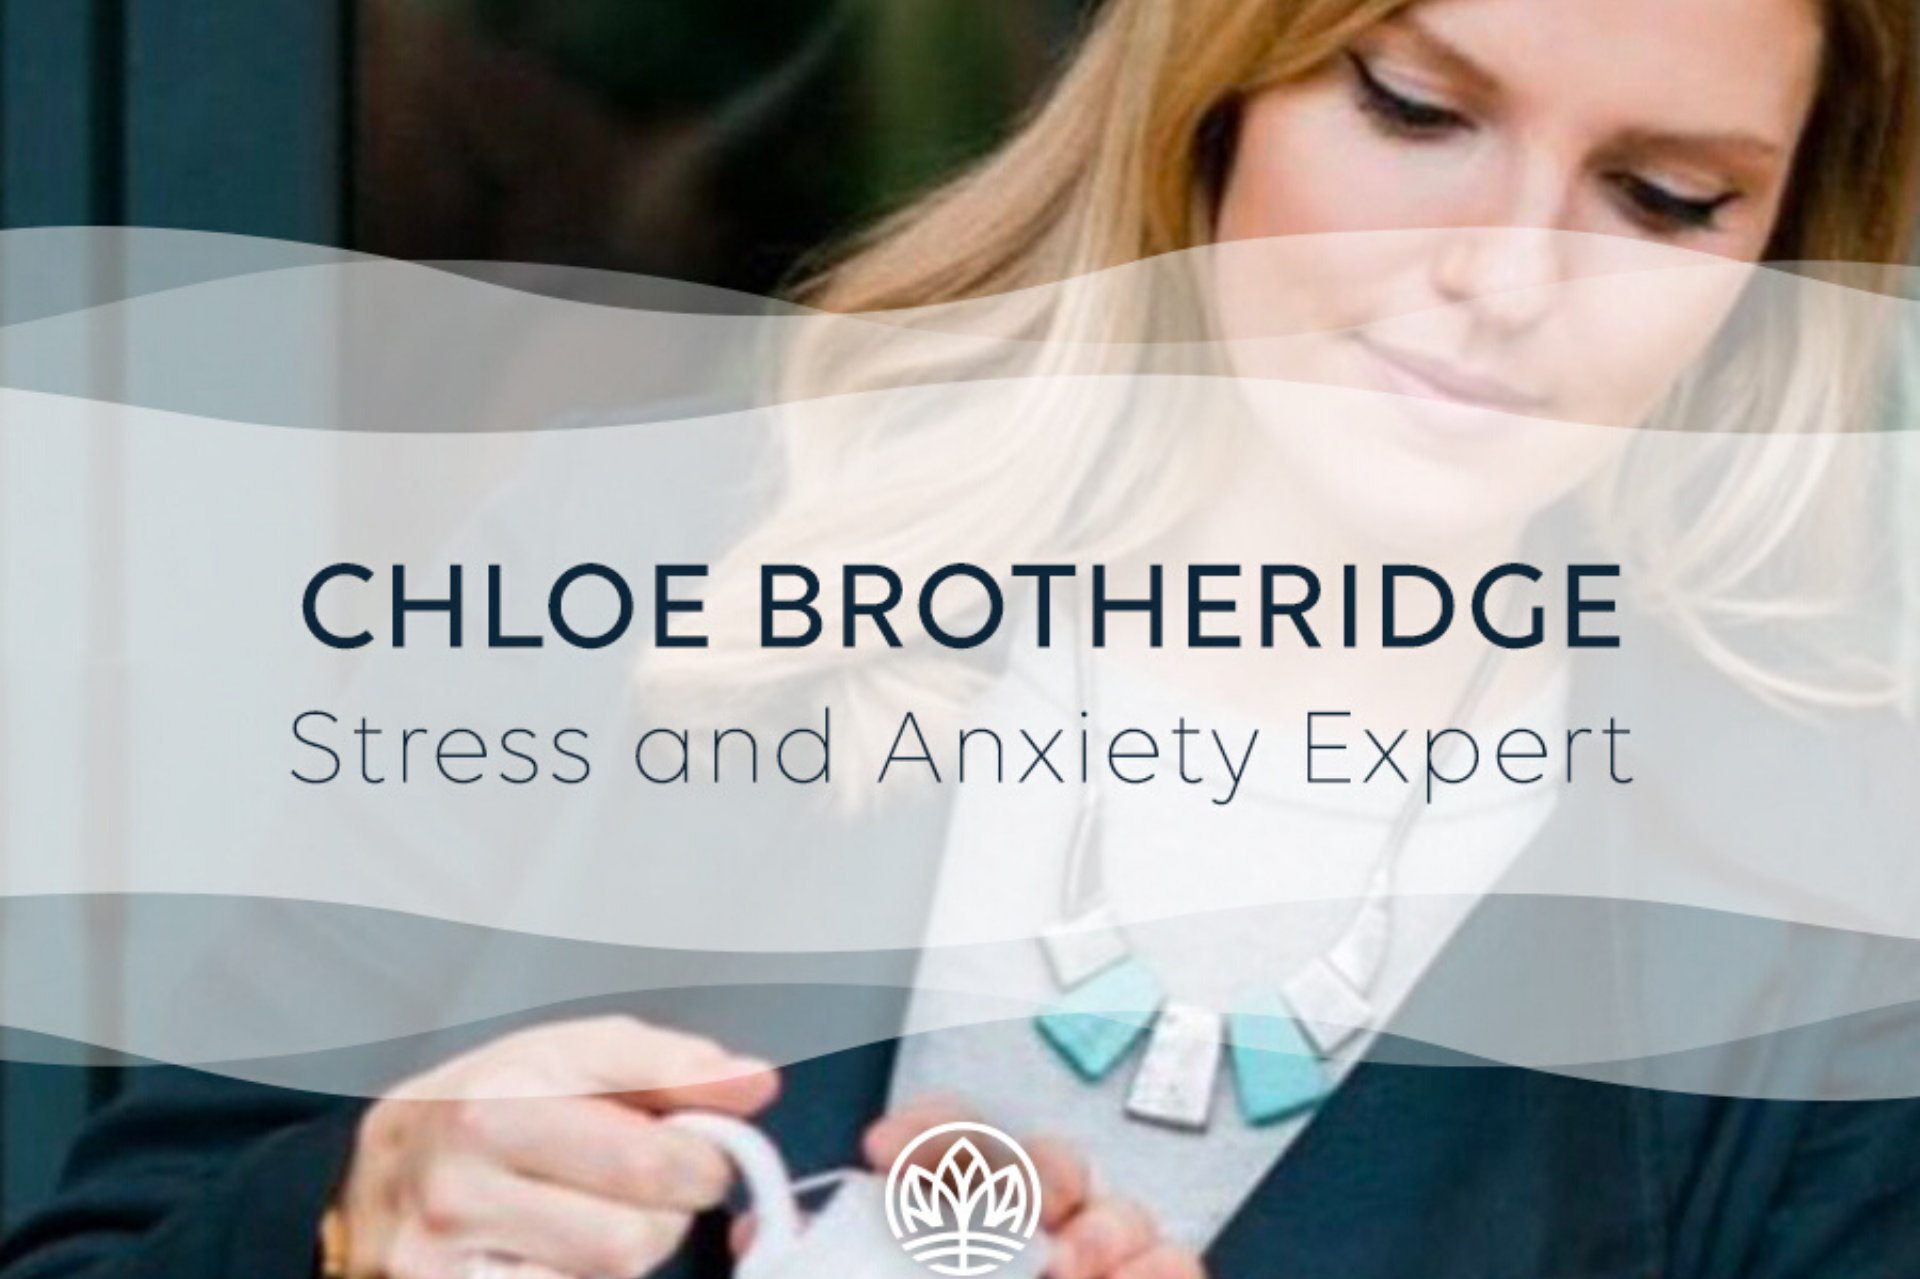 Stress and Anxiety Q&A with Expert Chloe Brotheridge